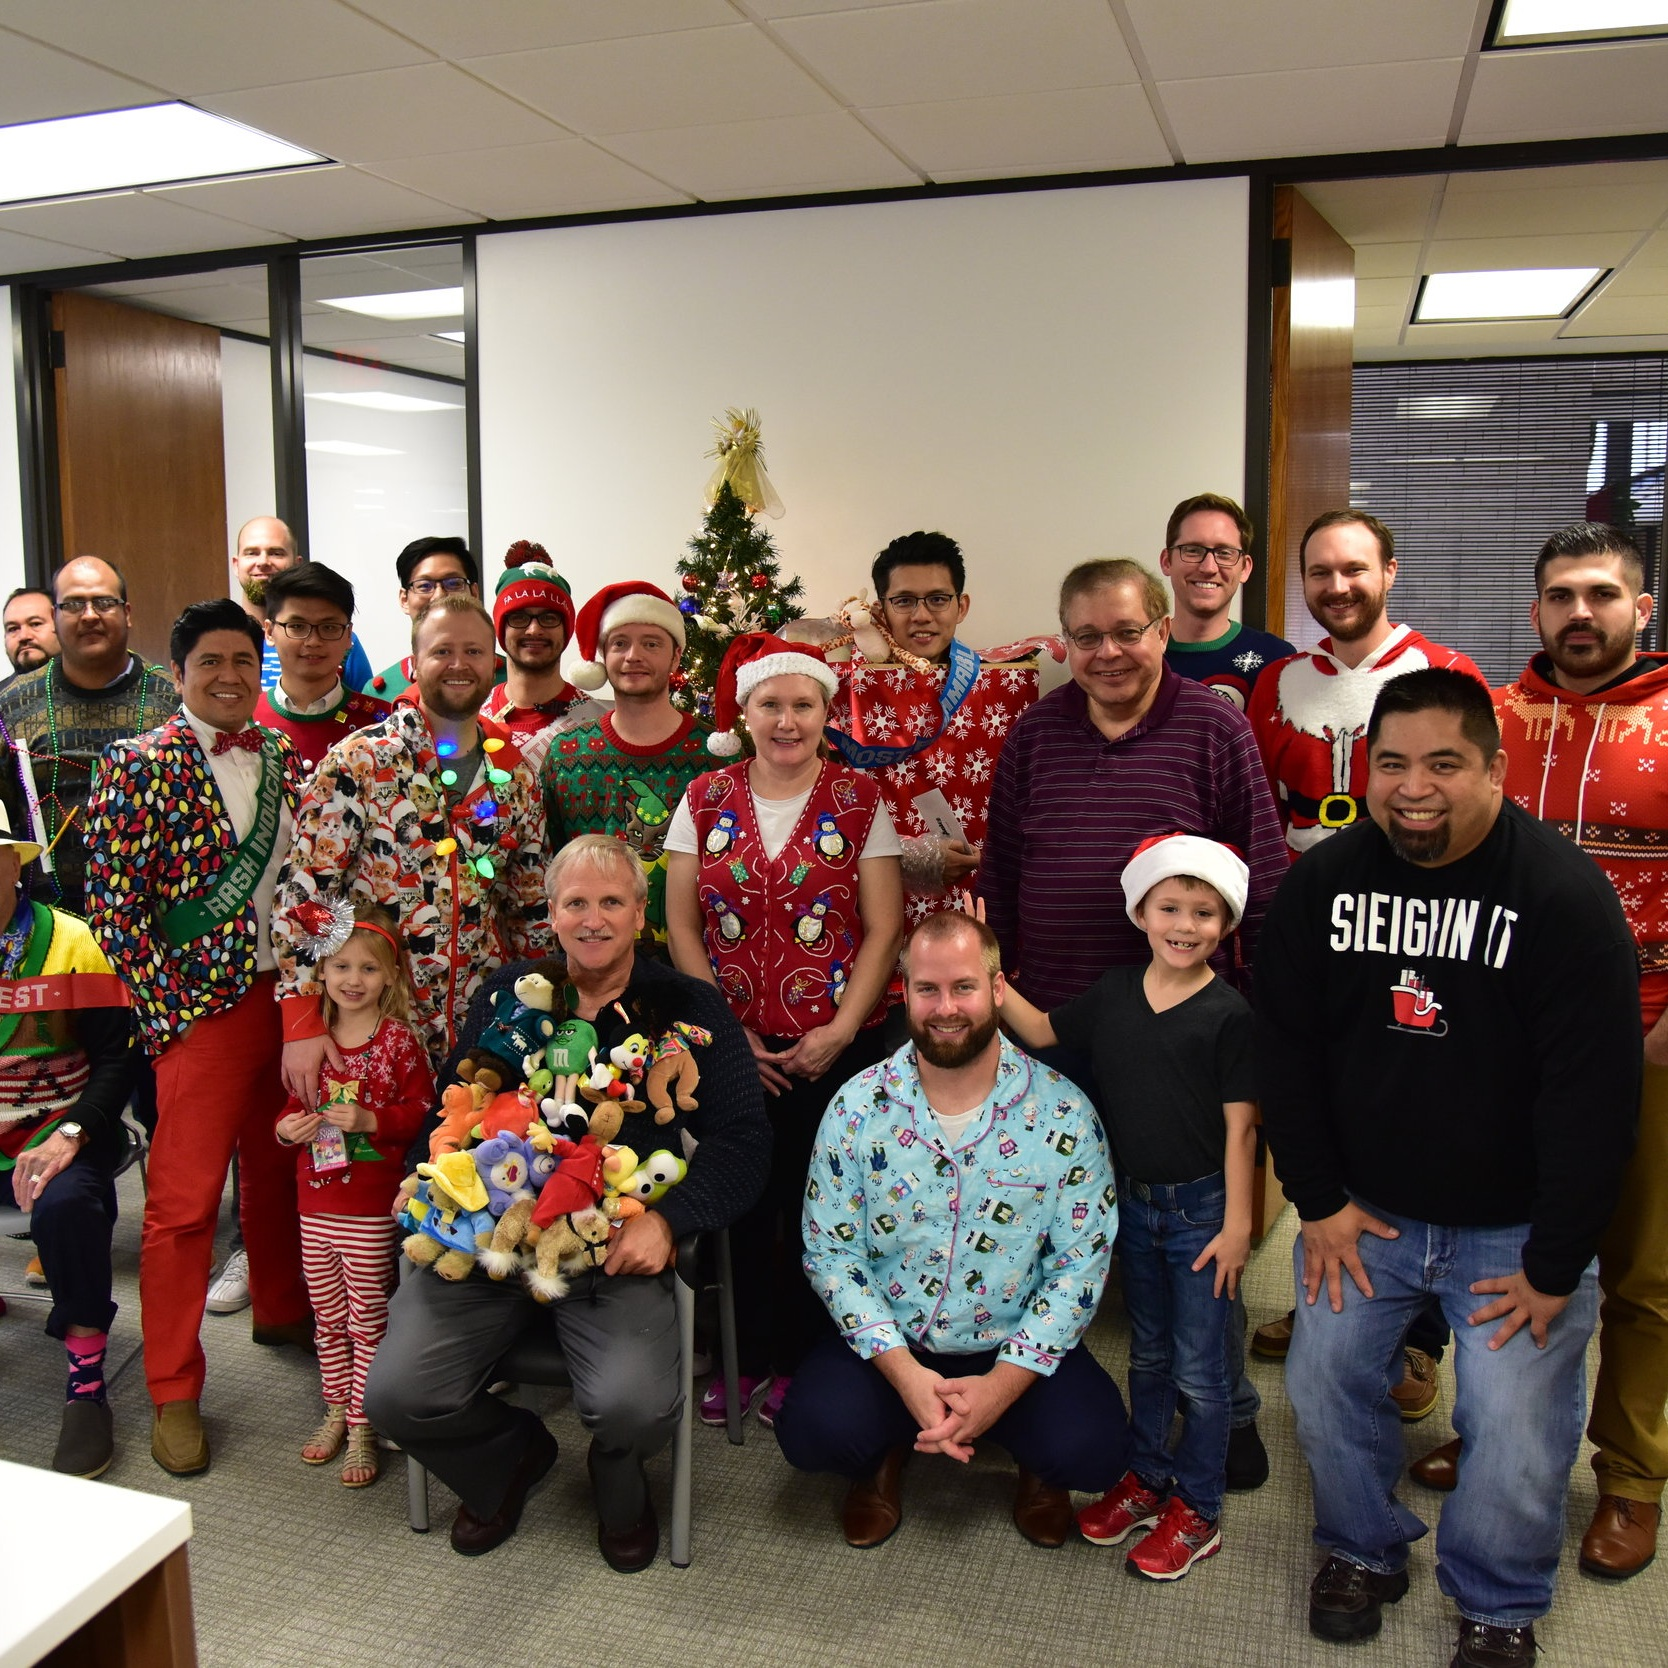 UGLY SWEATER CONTEST 2017 - Annual Ugly Sweater Contest is always a blast! The uglier and more creative the better. First place this year went to Leon who wrapped himself in a box as a gift!